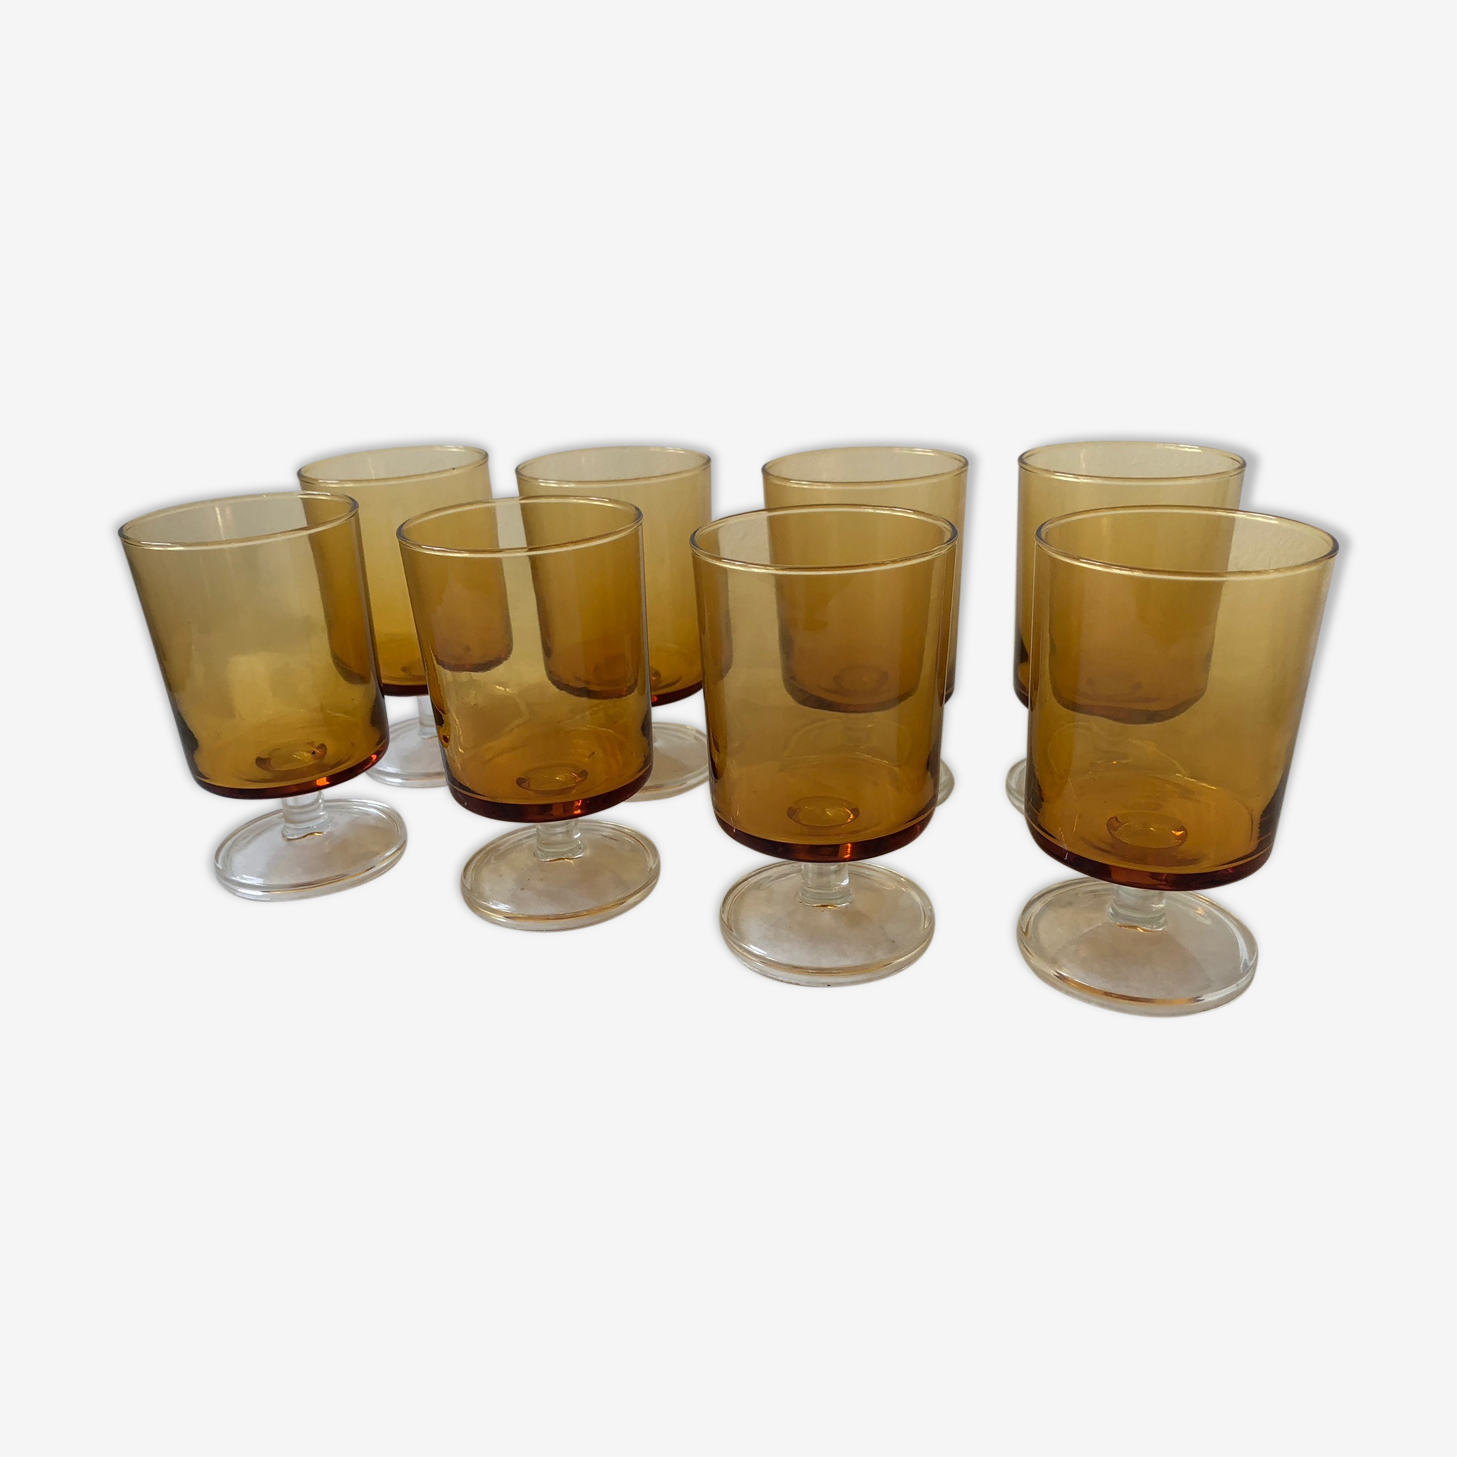 Set of 6 amber glass glasses with feet